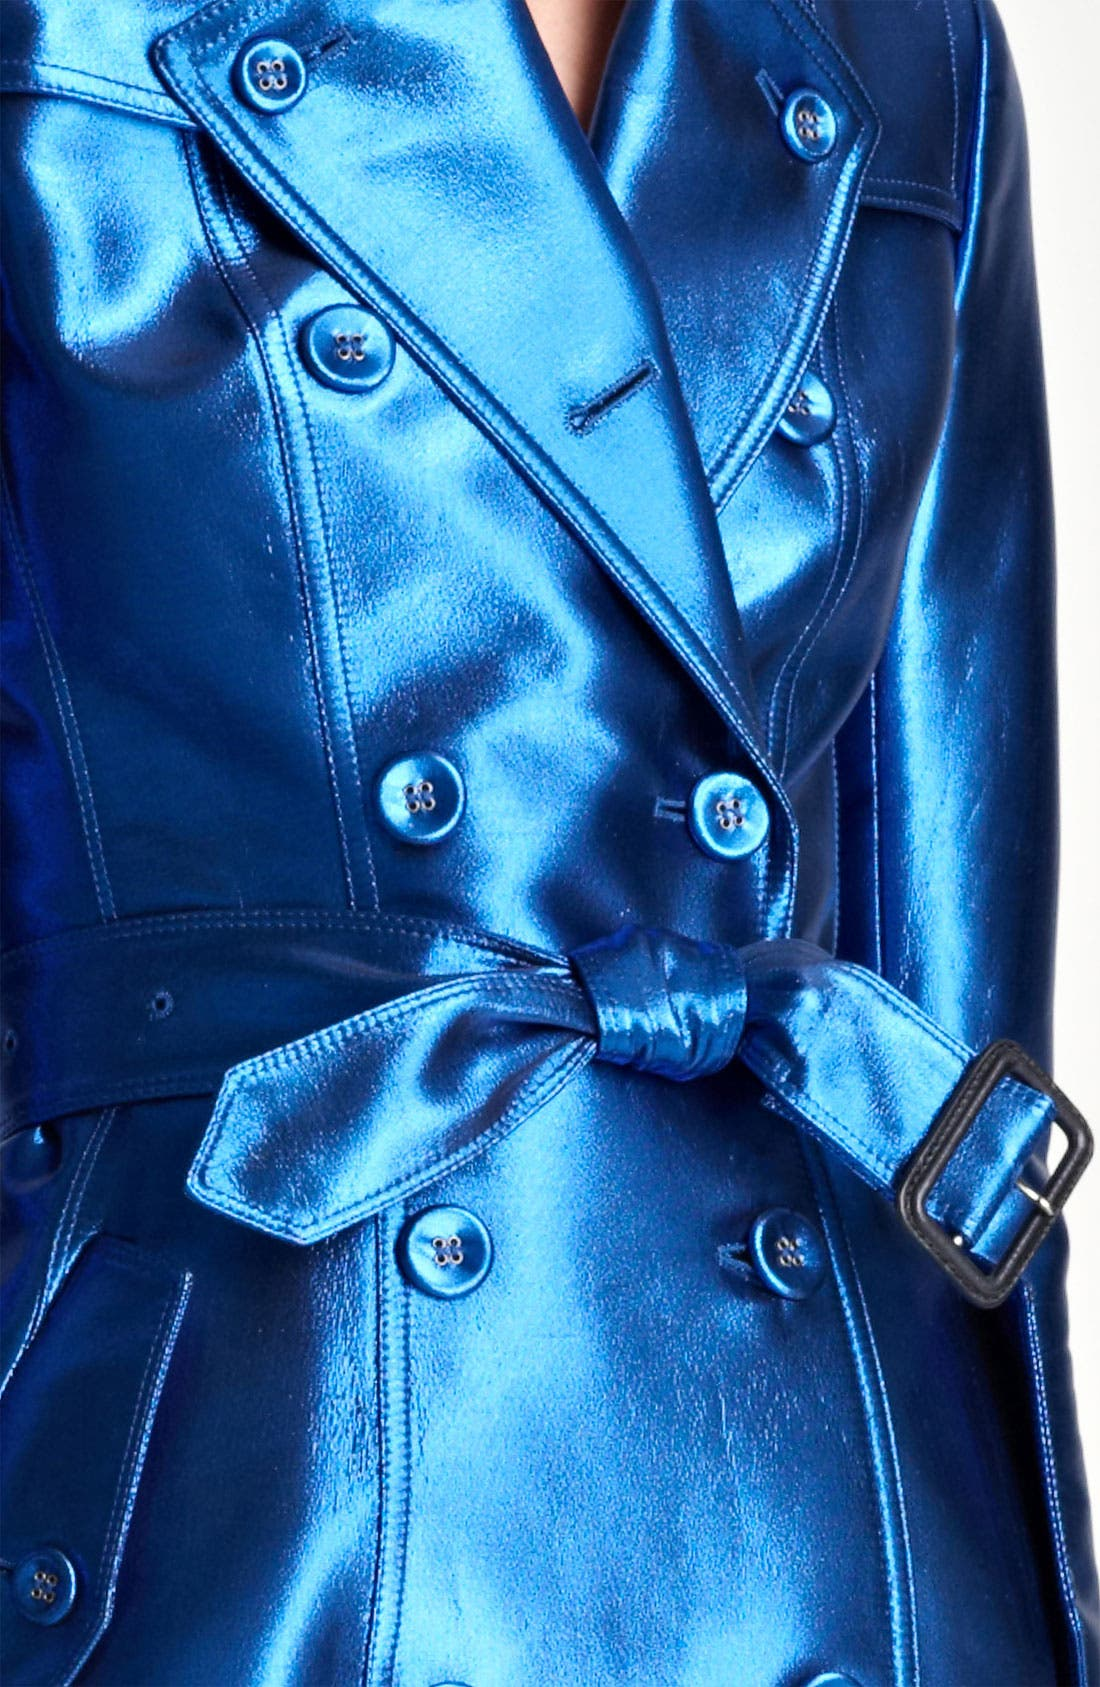 BURBERRY PRORSUM,                             Belted Metallic Trench Coat,                             Alternate thumbnail 3, color,                             430